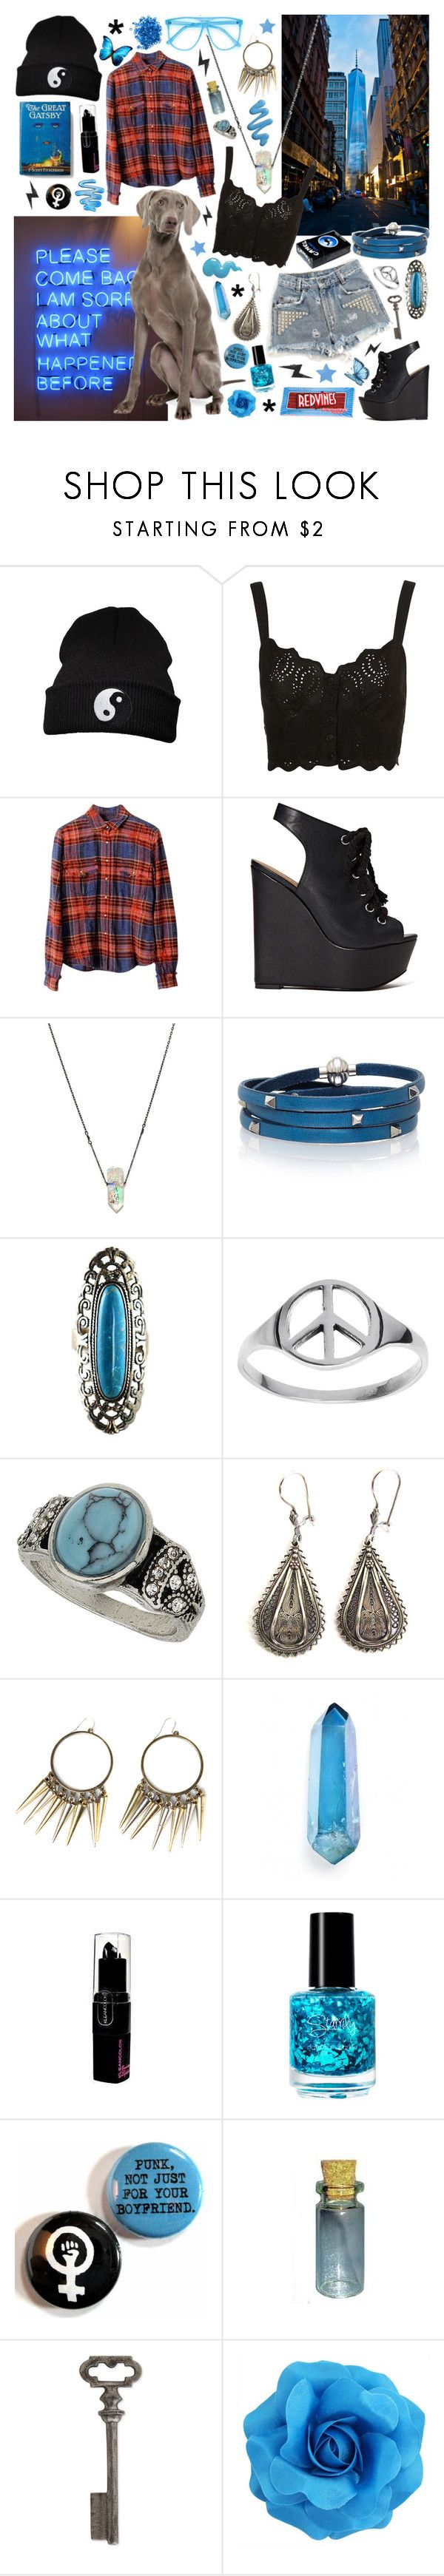 """""""Wish we could turn back time, to the good ol' days"""" by aquabatgirl ❤ liked on Polyvore featuring Ryan Michael, Shoe Cult, Stone & Honey, Sif Jakobs Jewellery, Tressa, Miss Selfridge, Pull&Bear and Thirstystone"""